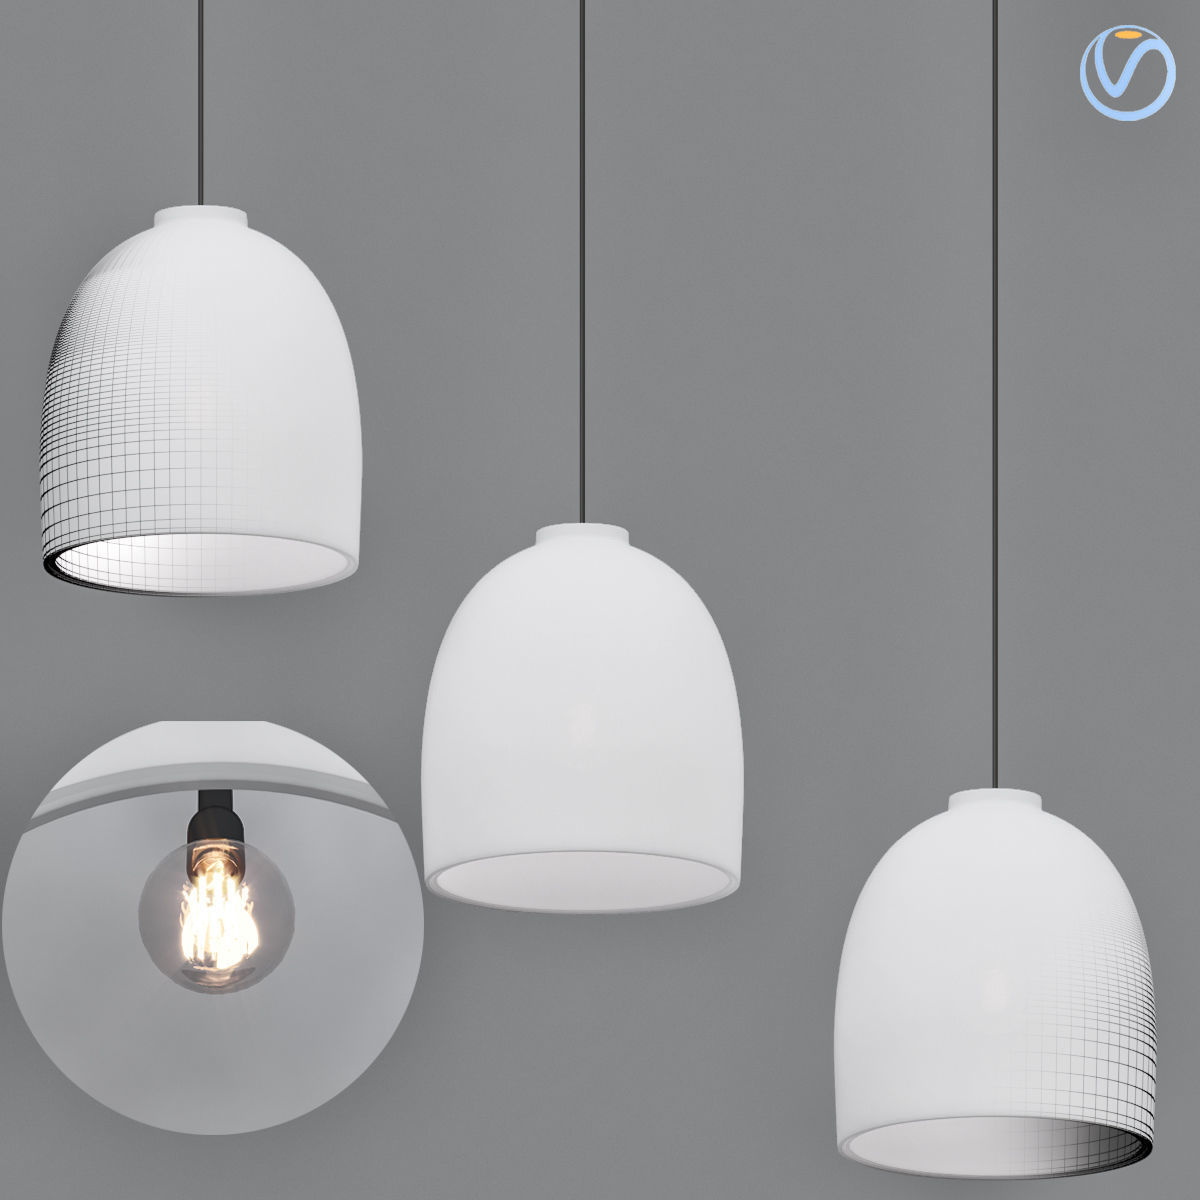 Contemporary Outdoor Pendant Lighting 3d Cgtrader